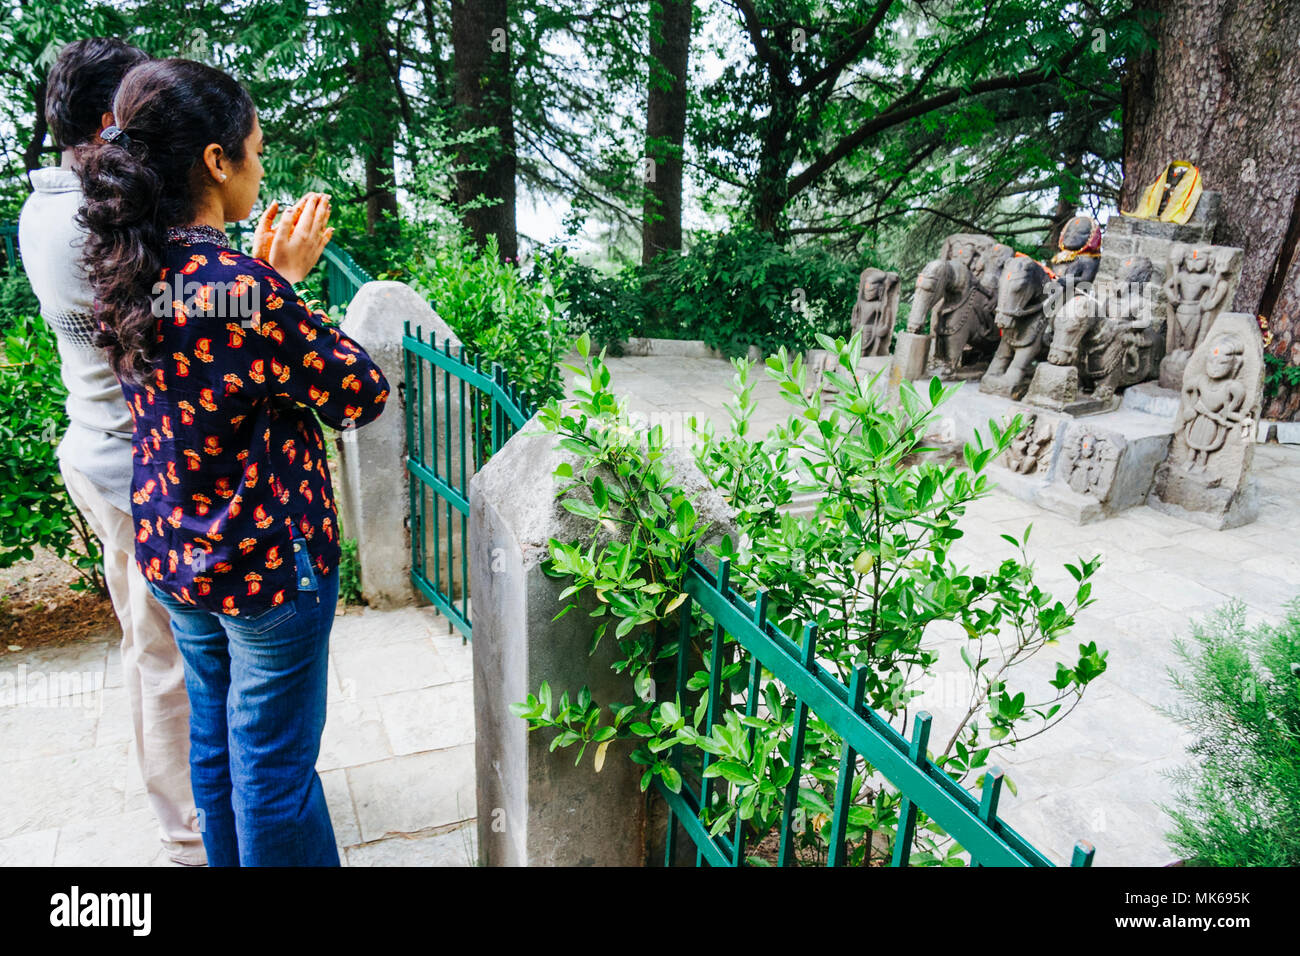 Nagar, Himachal Pradesh, India : Hindu people prays before the ancient stone statue of Guga Chauhan and the guardians of the Kullu valley in the garde - Stock Image